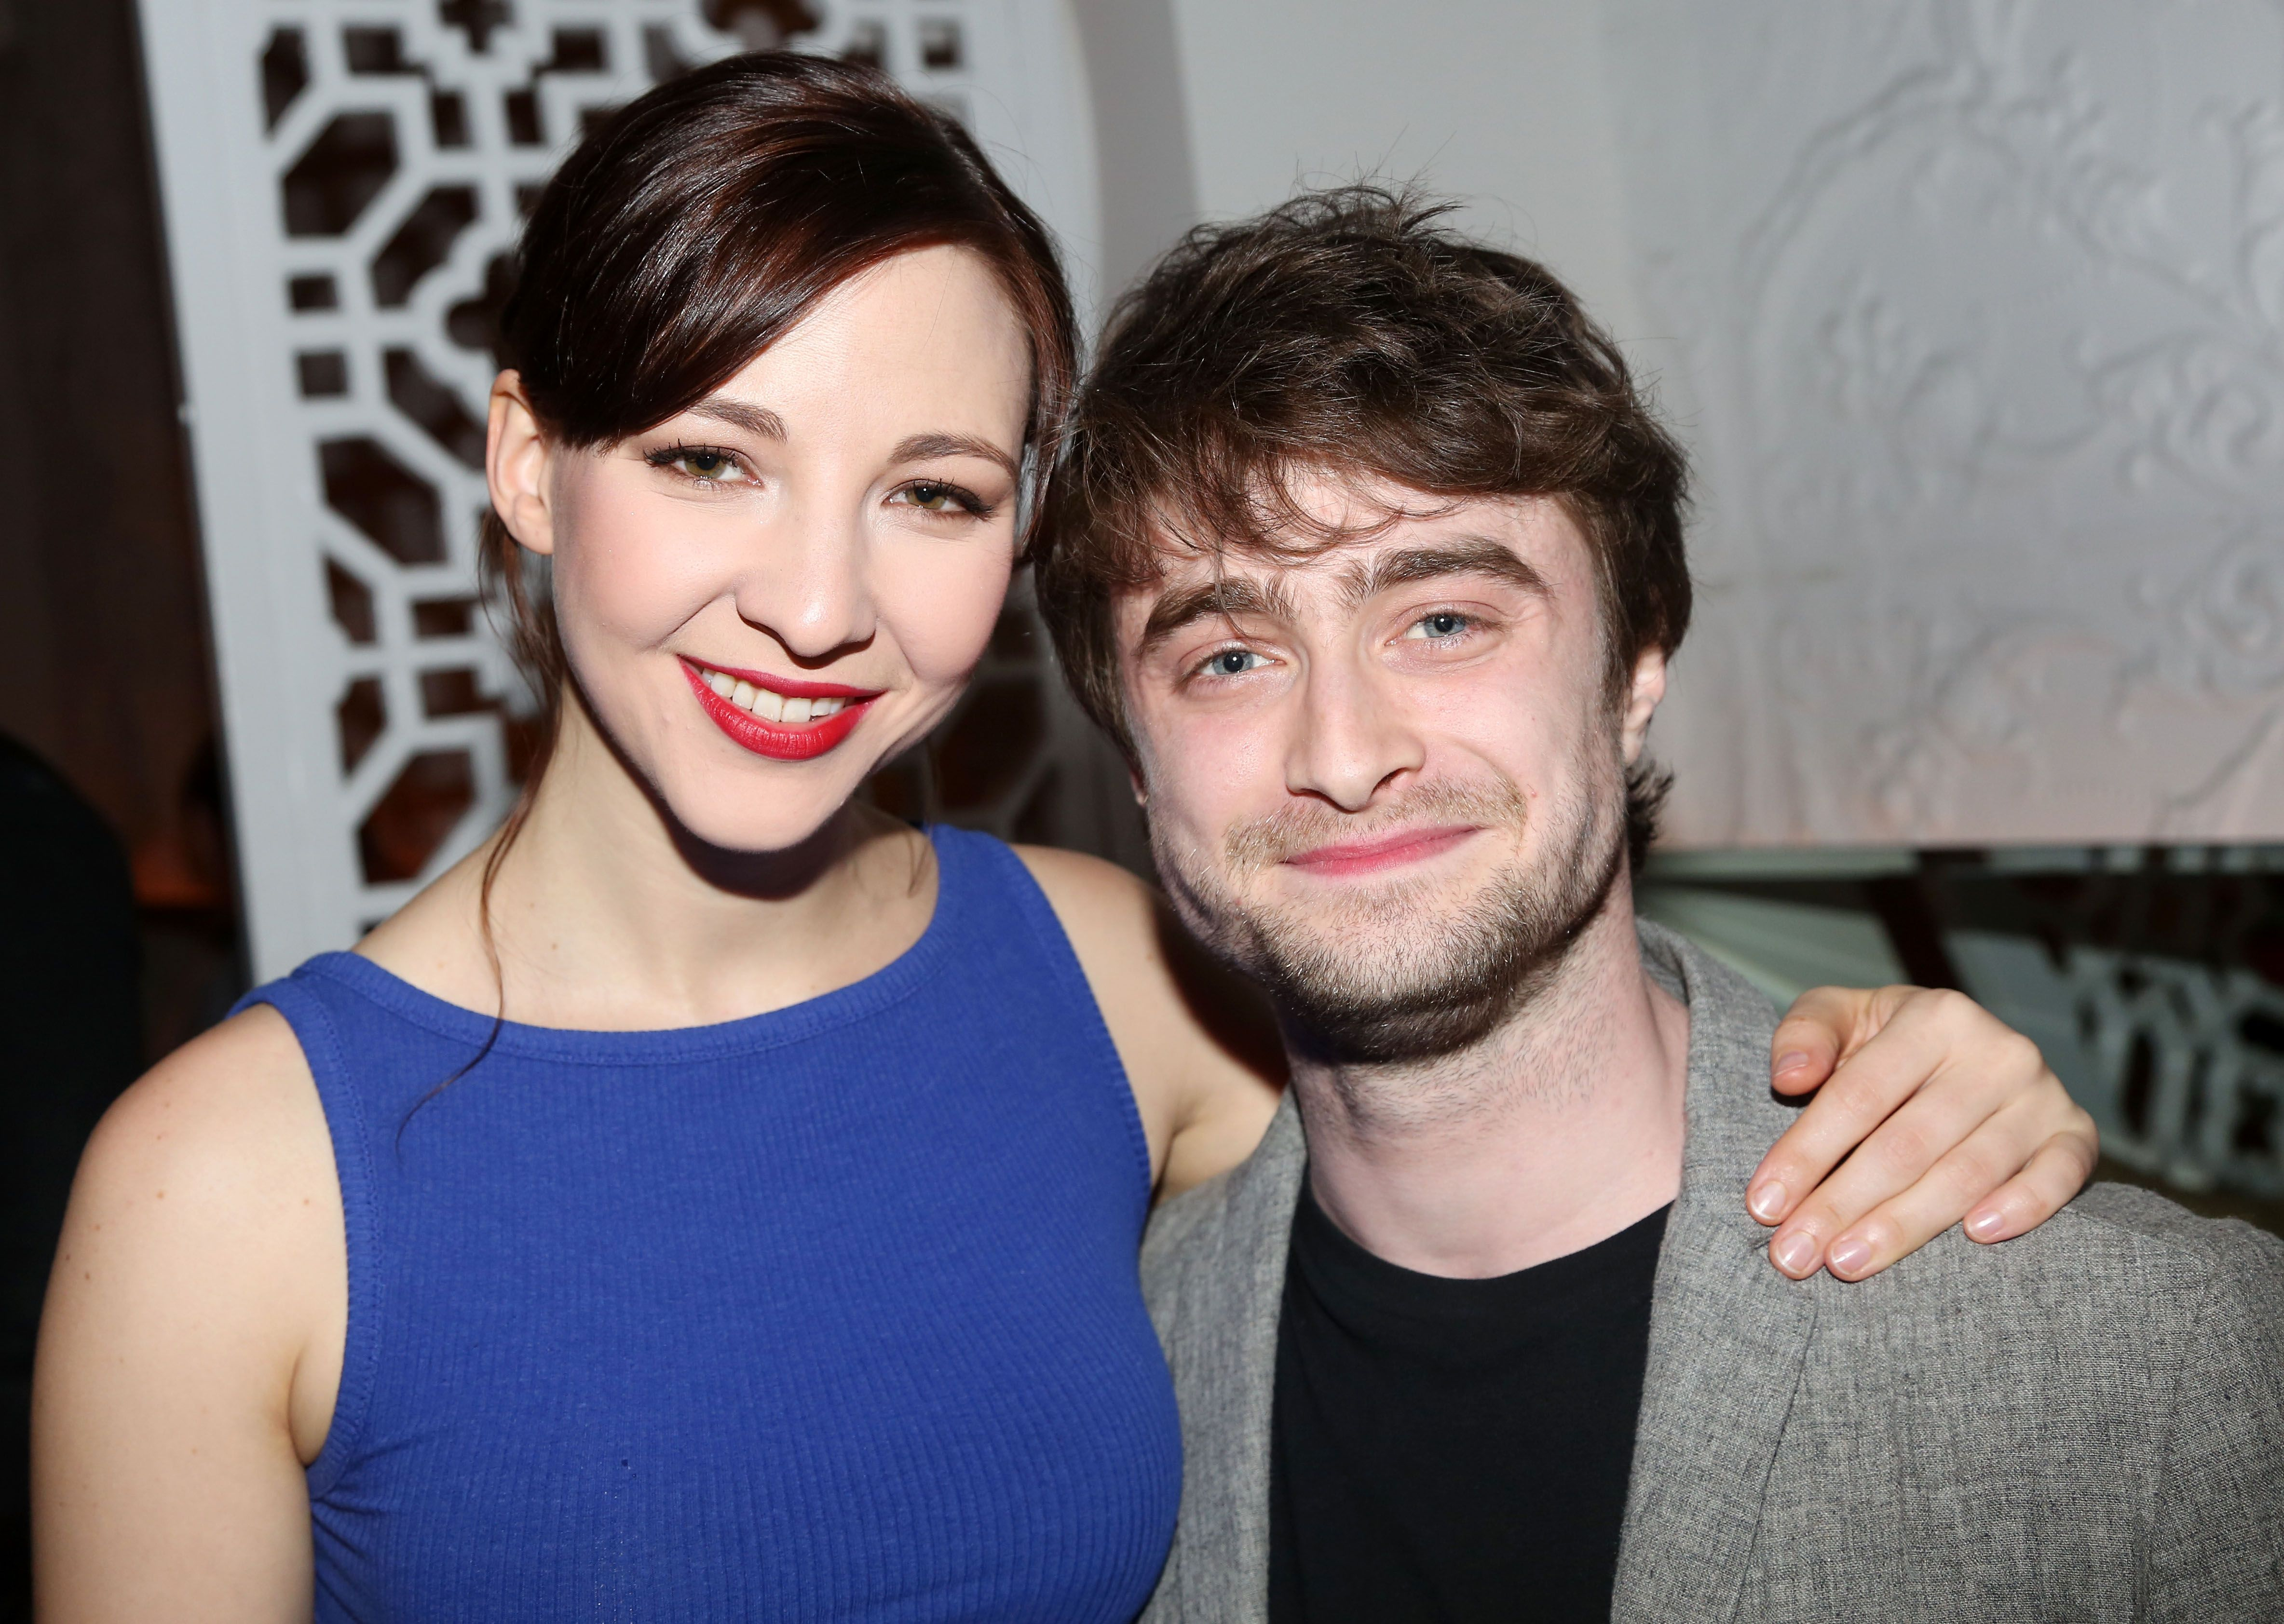 """Daniel Radcliffe and Erin Darke on the opening night of the play """"The Spoils"""" in 2015 in New York City 